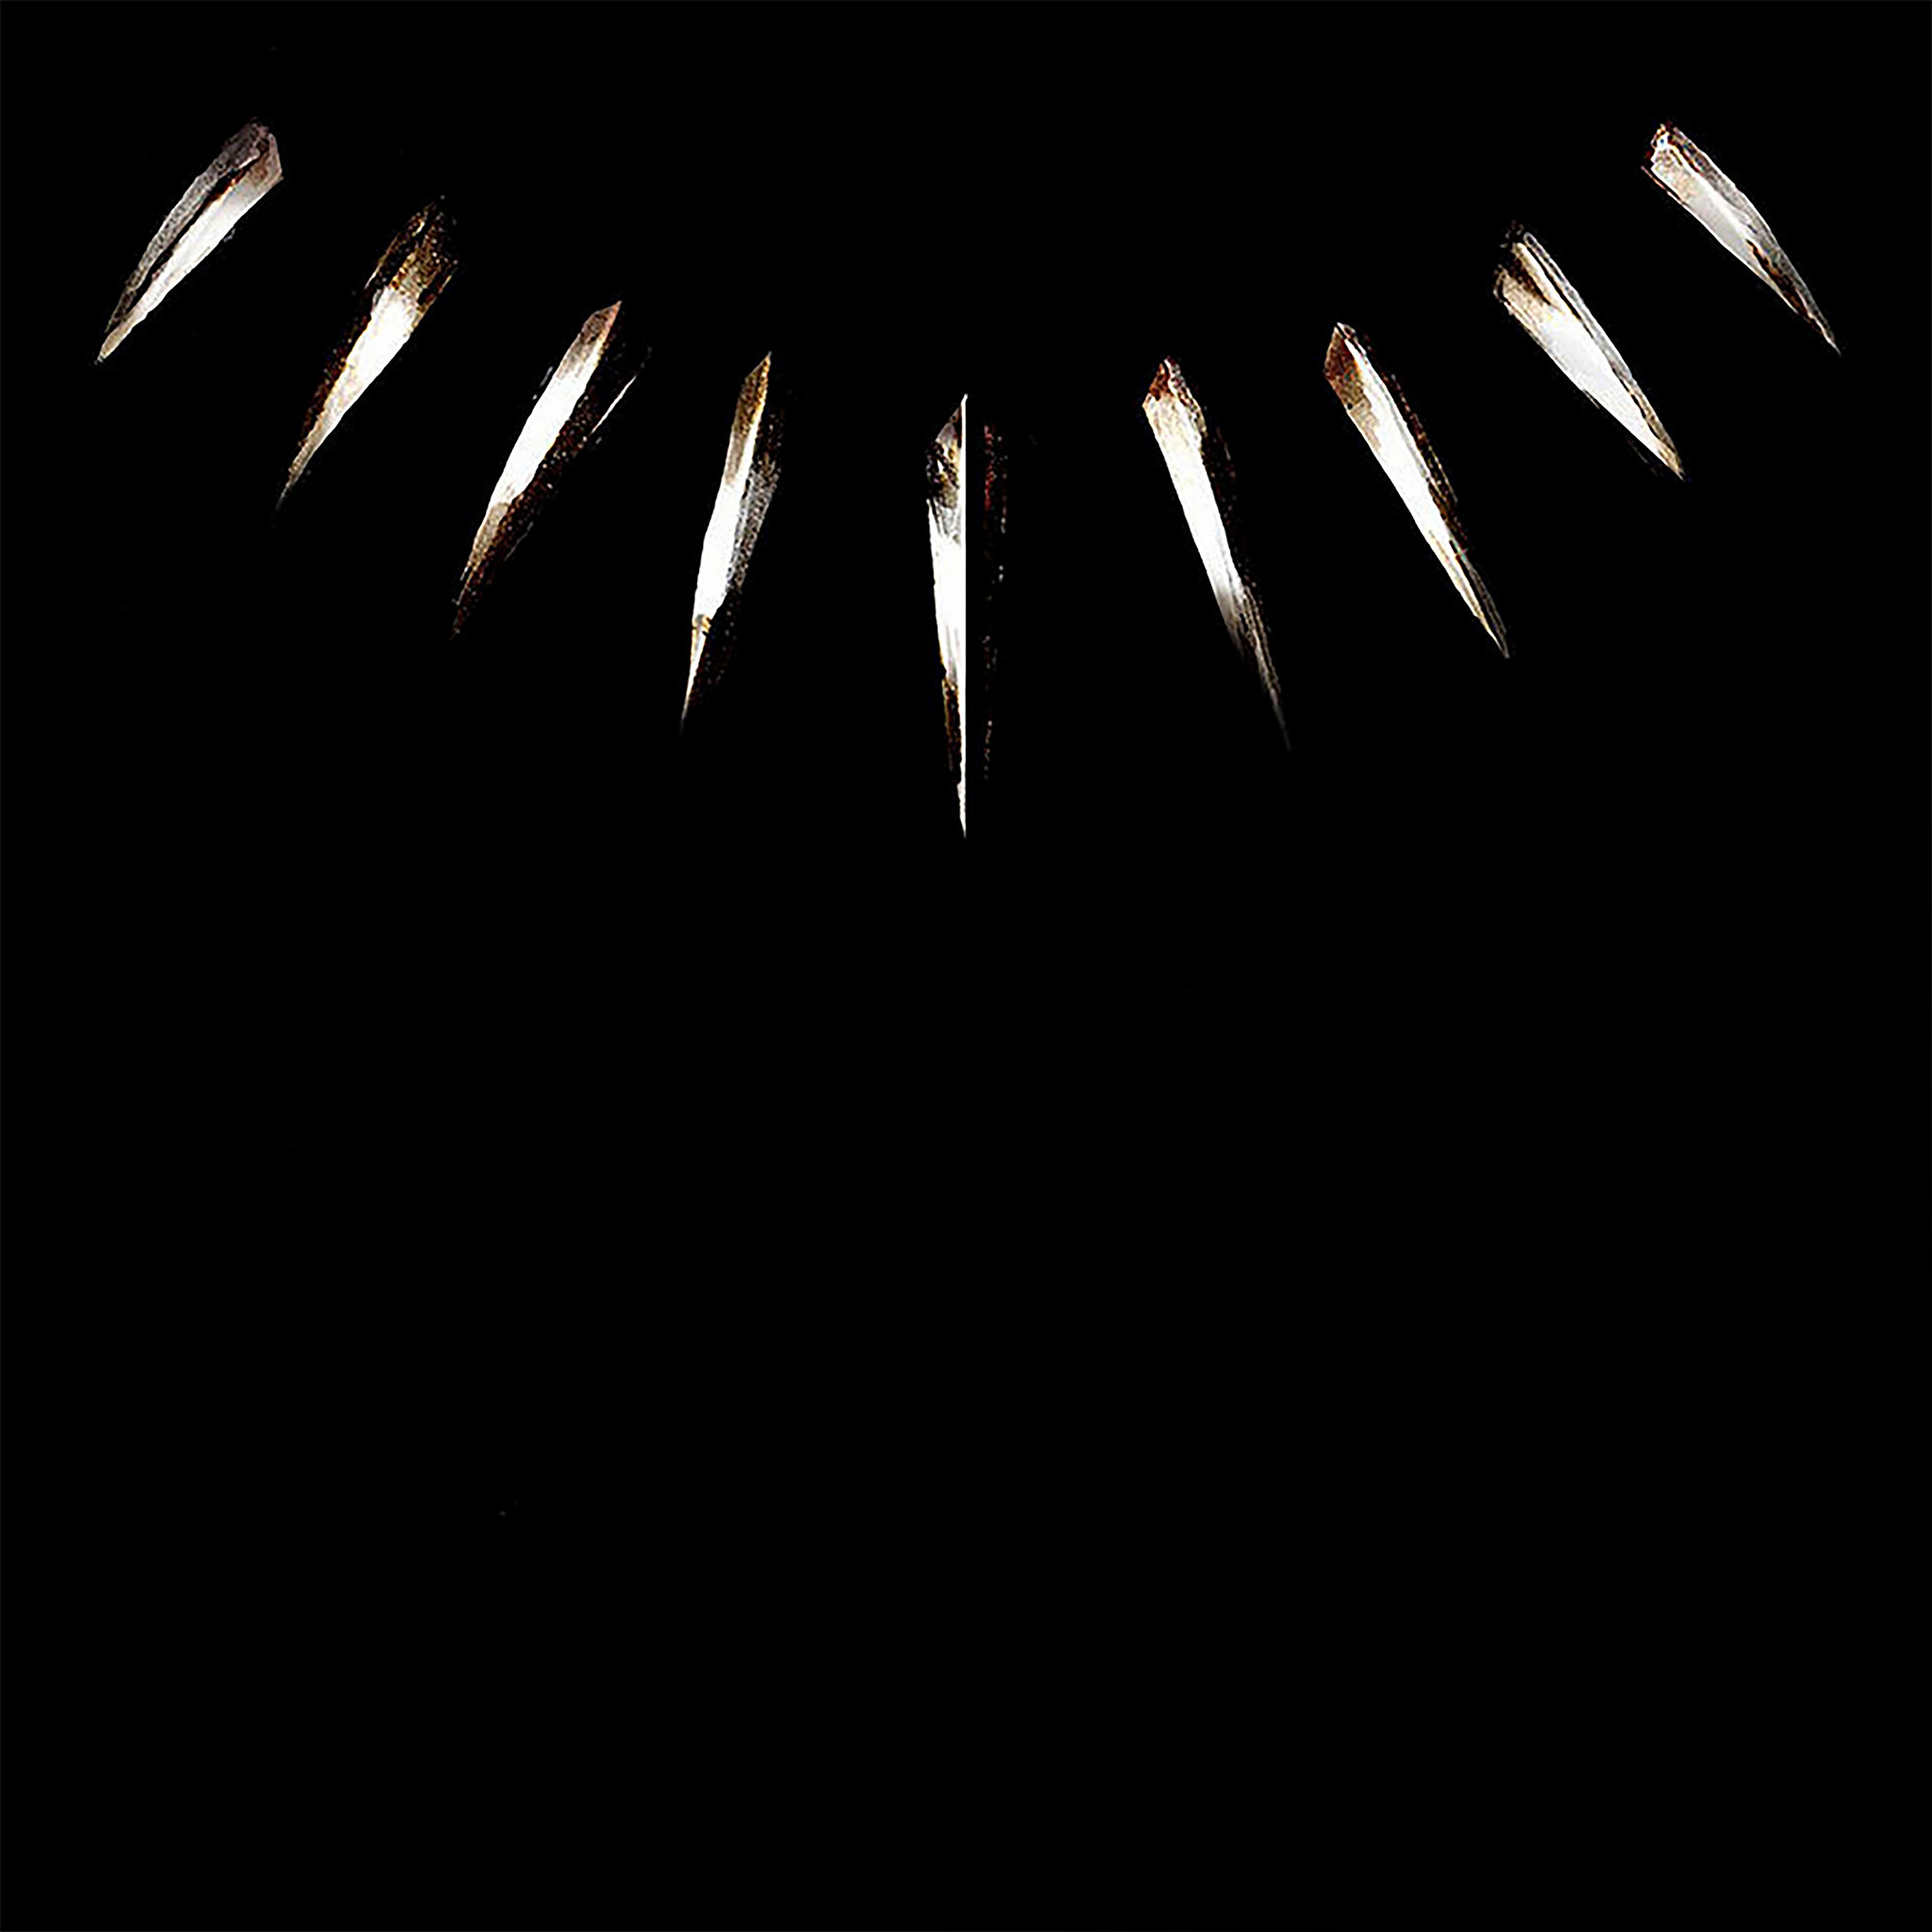 Simple Wallpaper Marvel Black Panther - papers  Graphic_35999.jpg